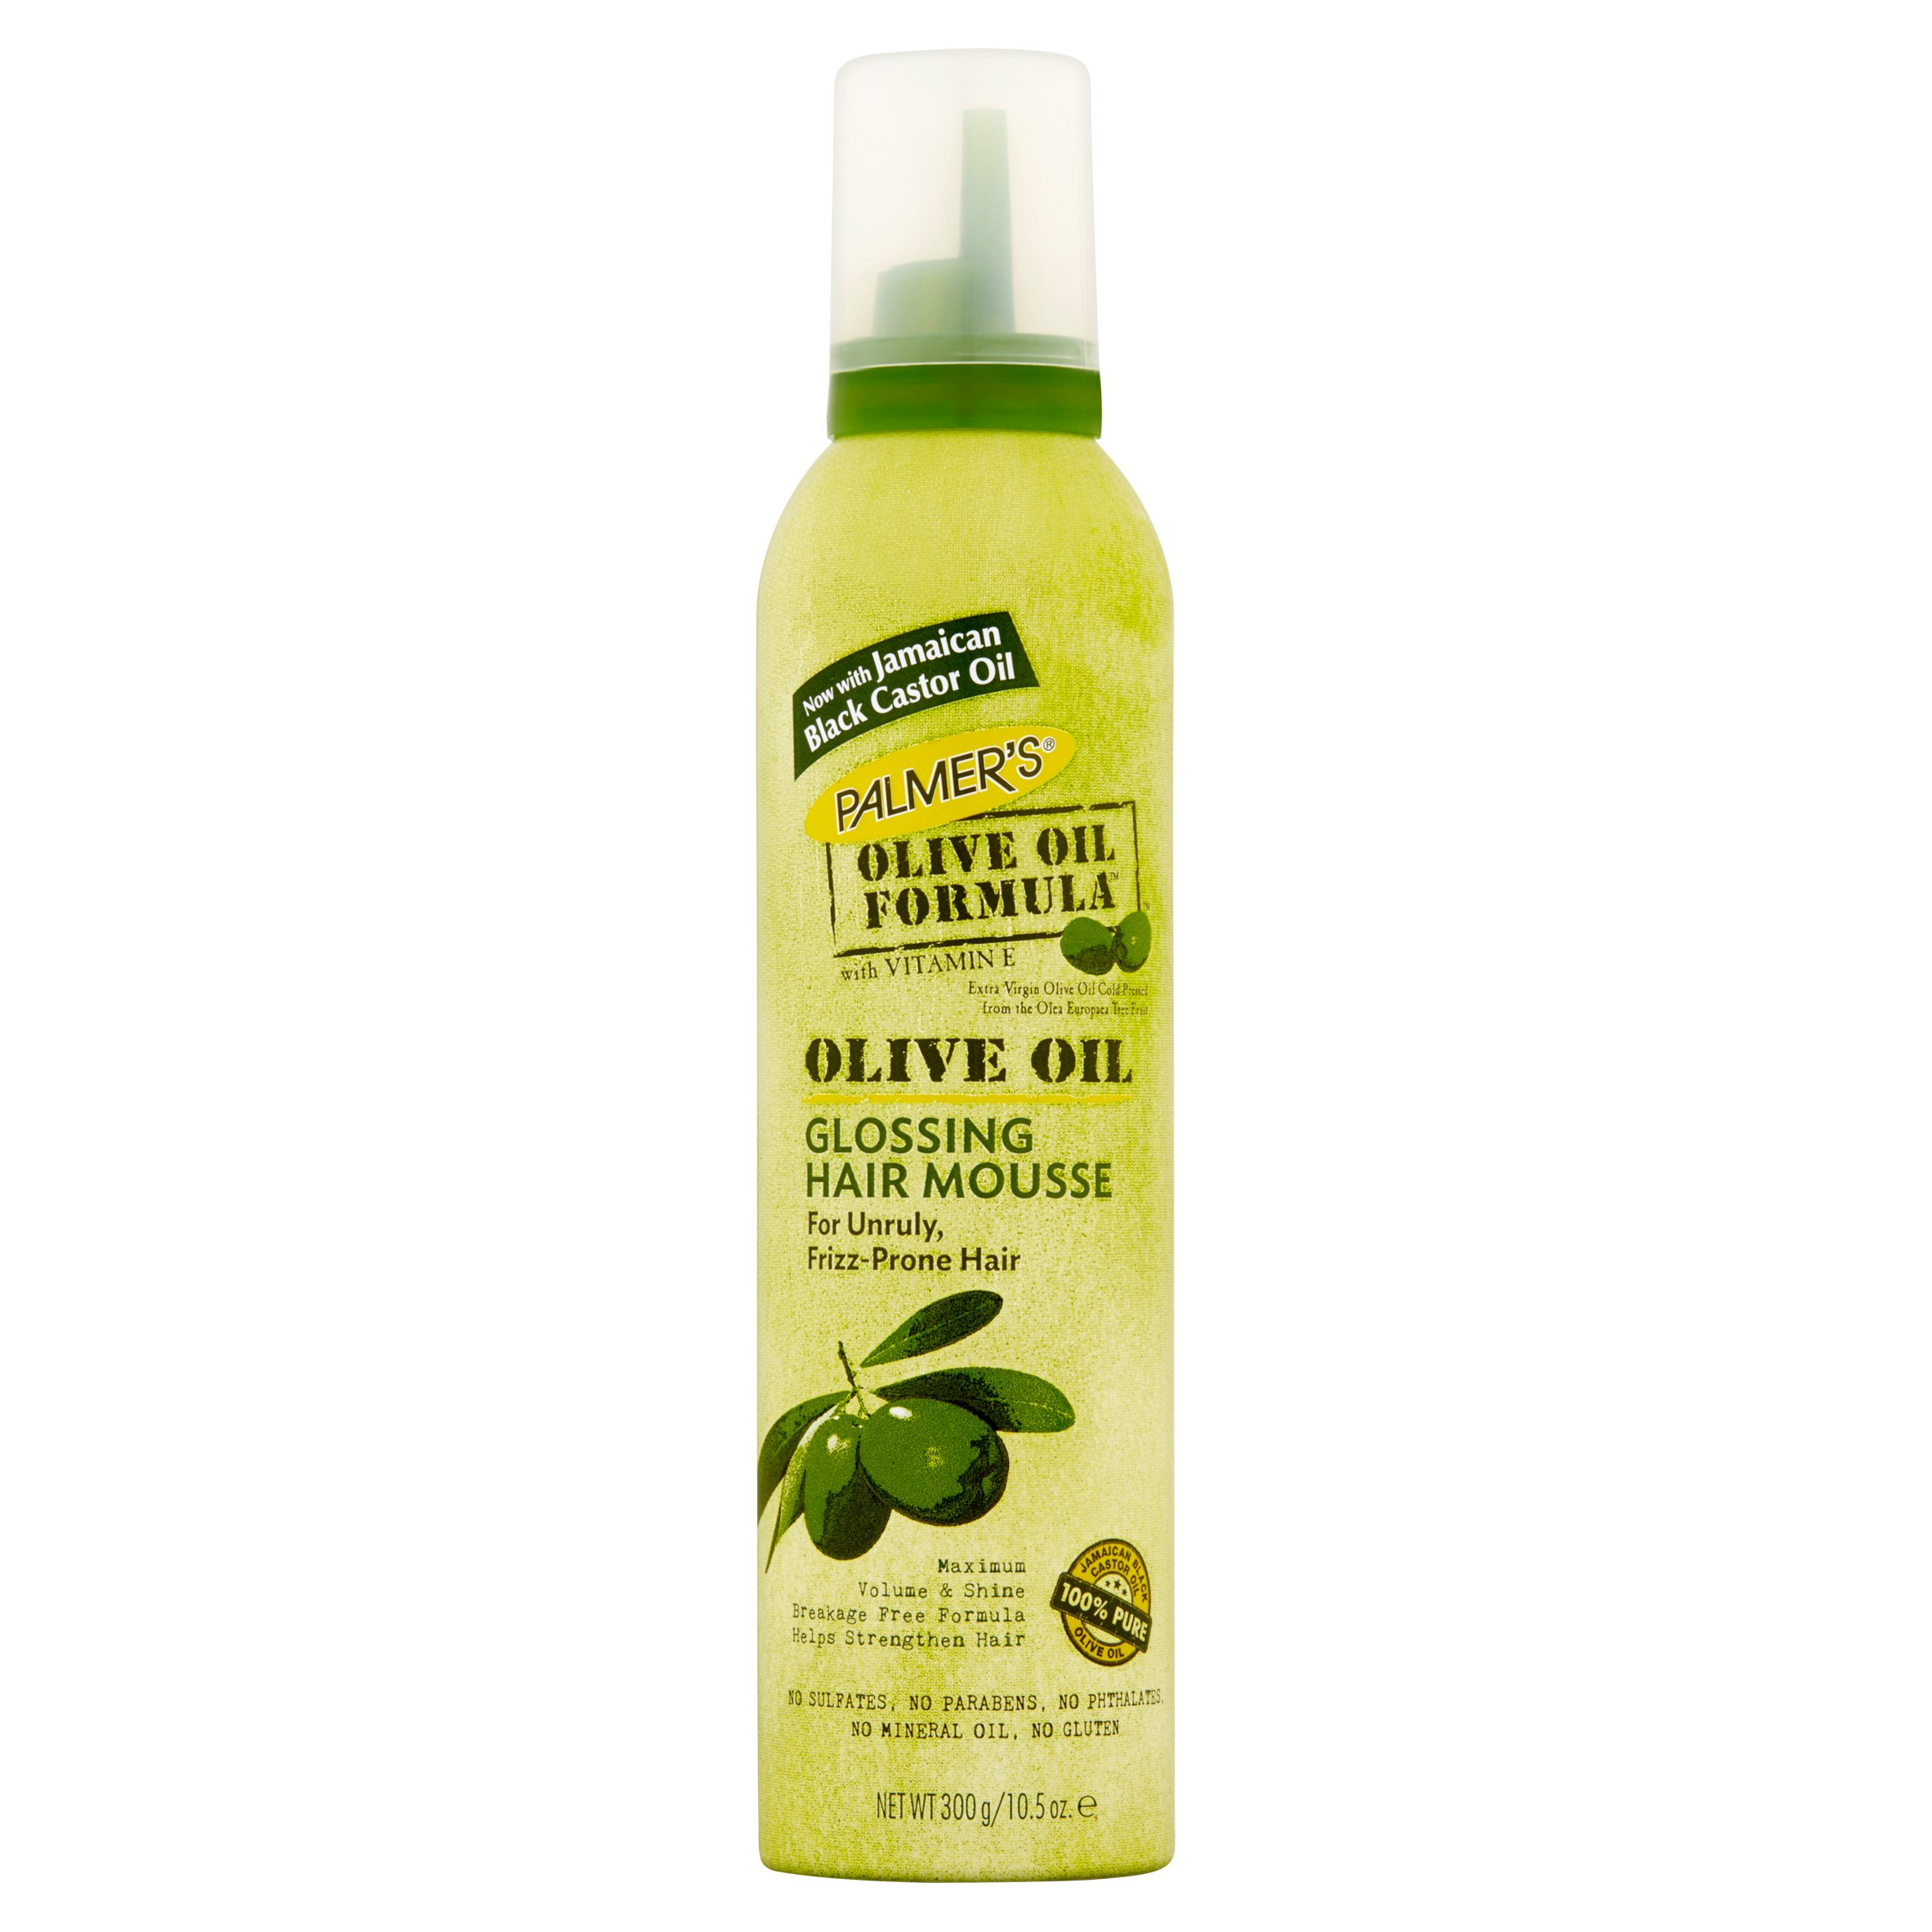 Palmer's Olive Oil Formula Glossing Hair Mousse, 10.5 oz